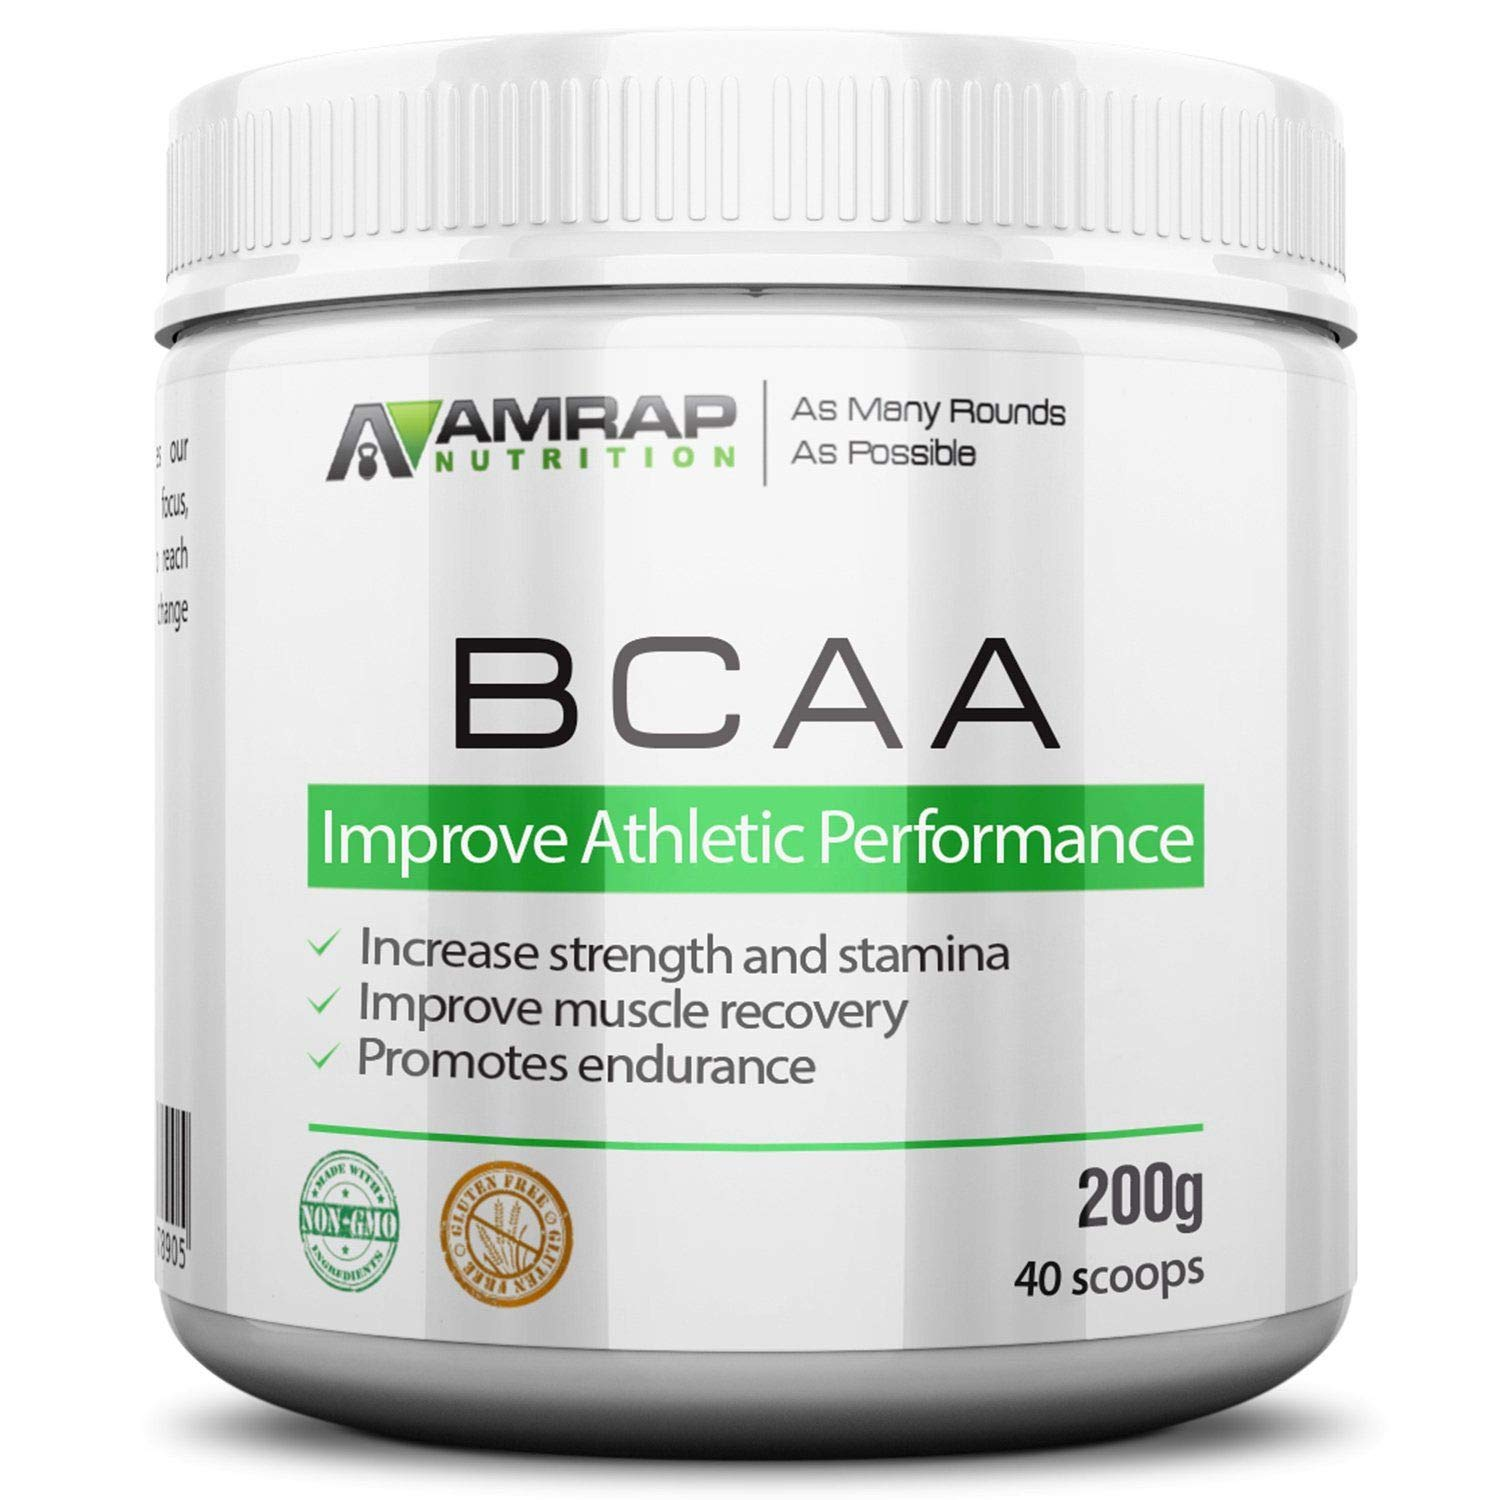 Pure BCAA Powder Acid | AMRAP Nutrition Powder - Powder Branched Chain Amino Acid Recovery Powder by AMRAP Nutrition B019EOIIJM, フロレアルOnlineShop東京丸の内:1fd66c6d --- dakuwebsite.xyz